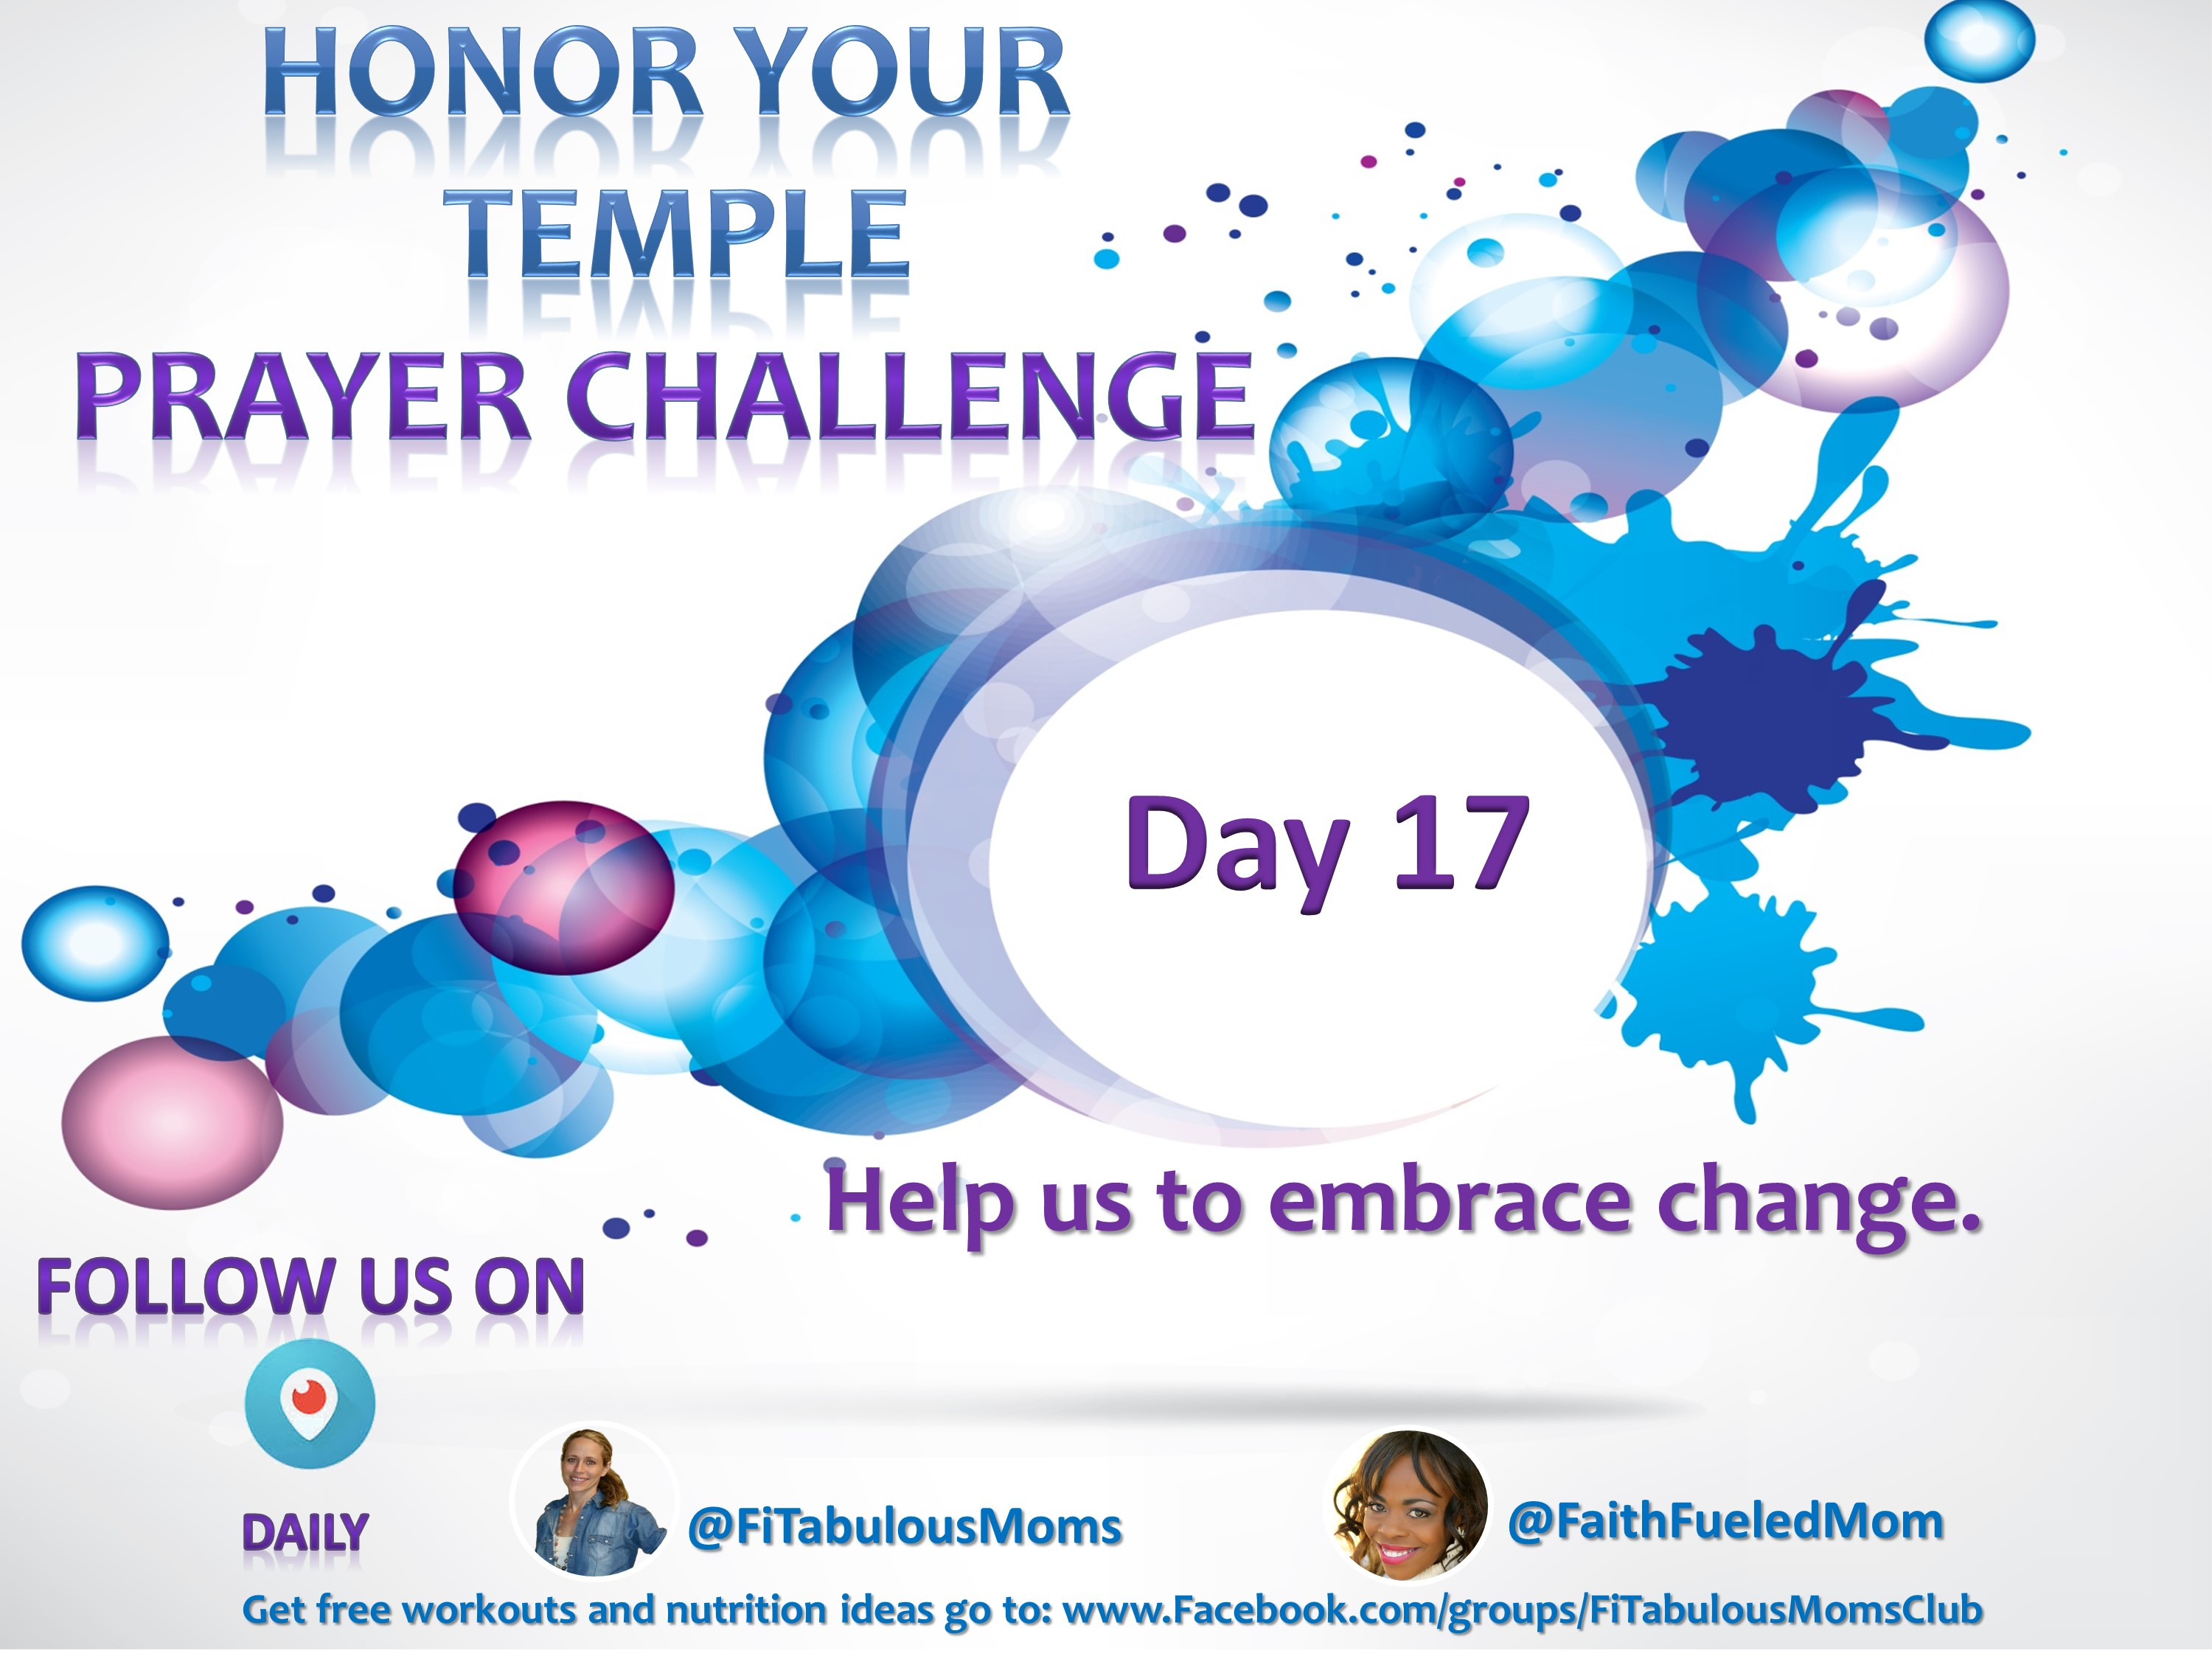 Day 17 Honor Your Temple Prayer Challenge